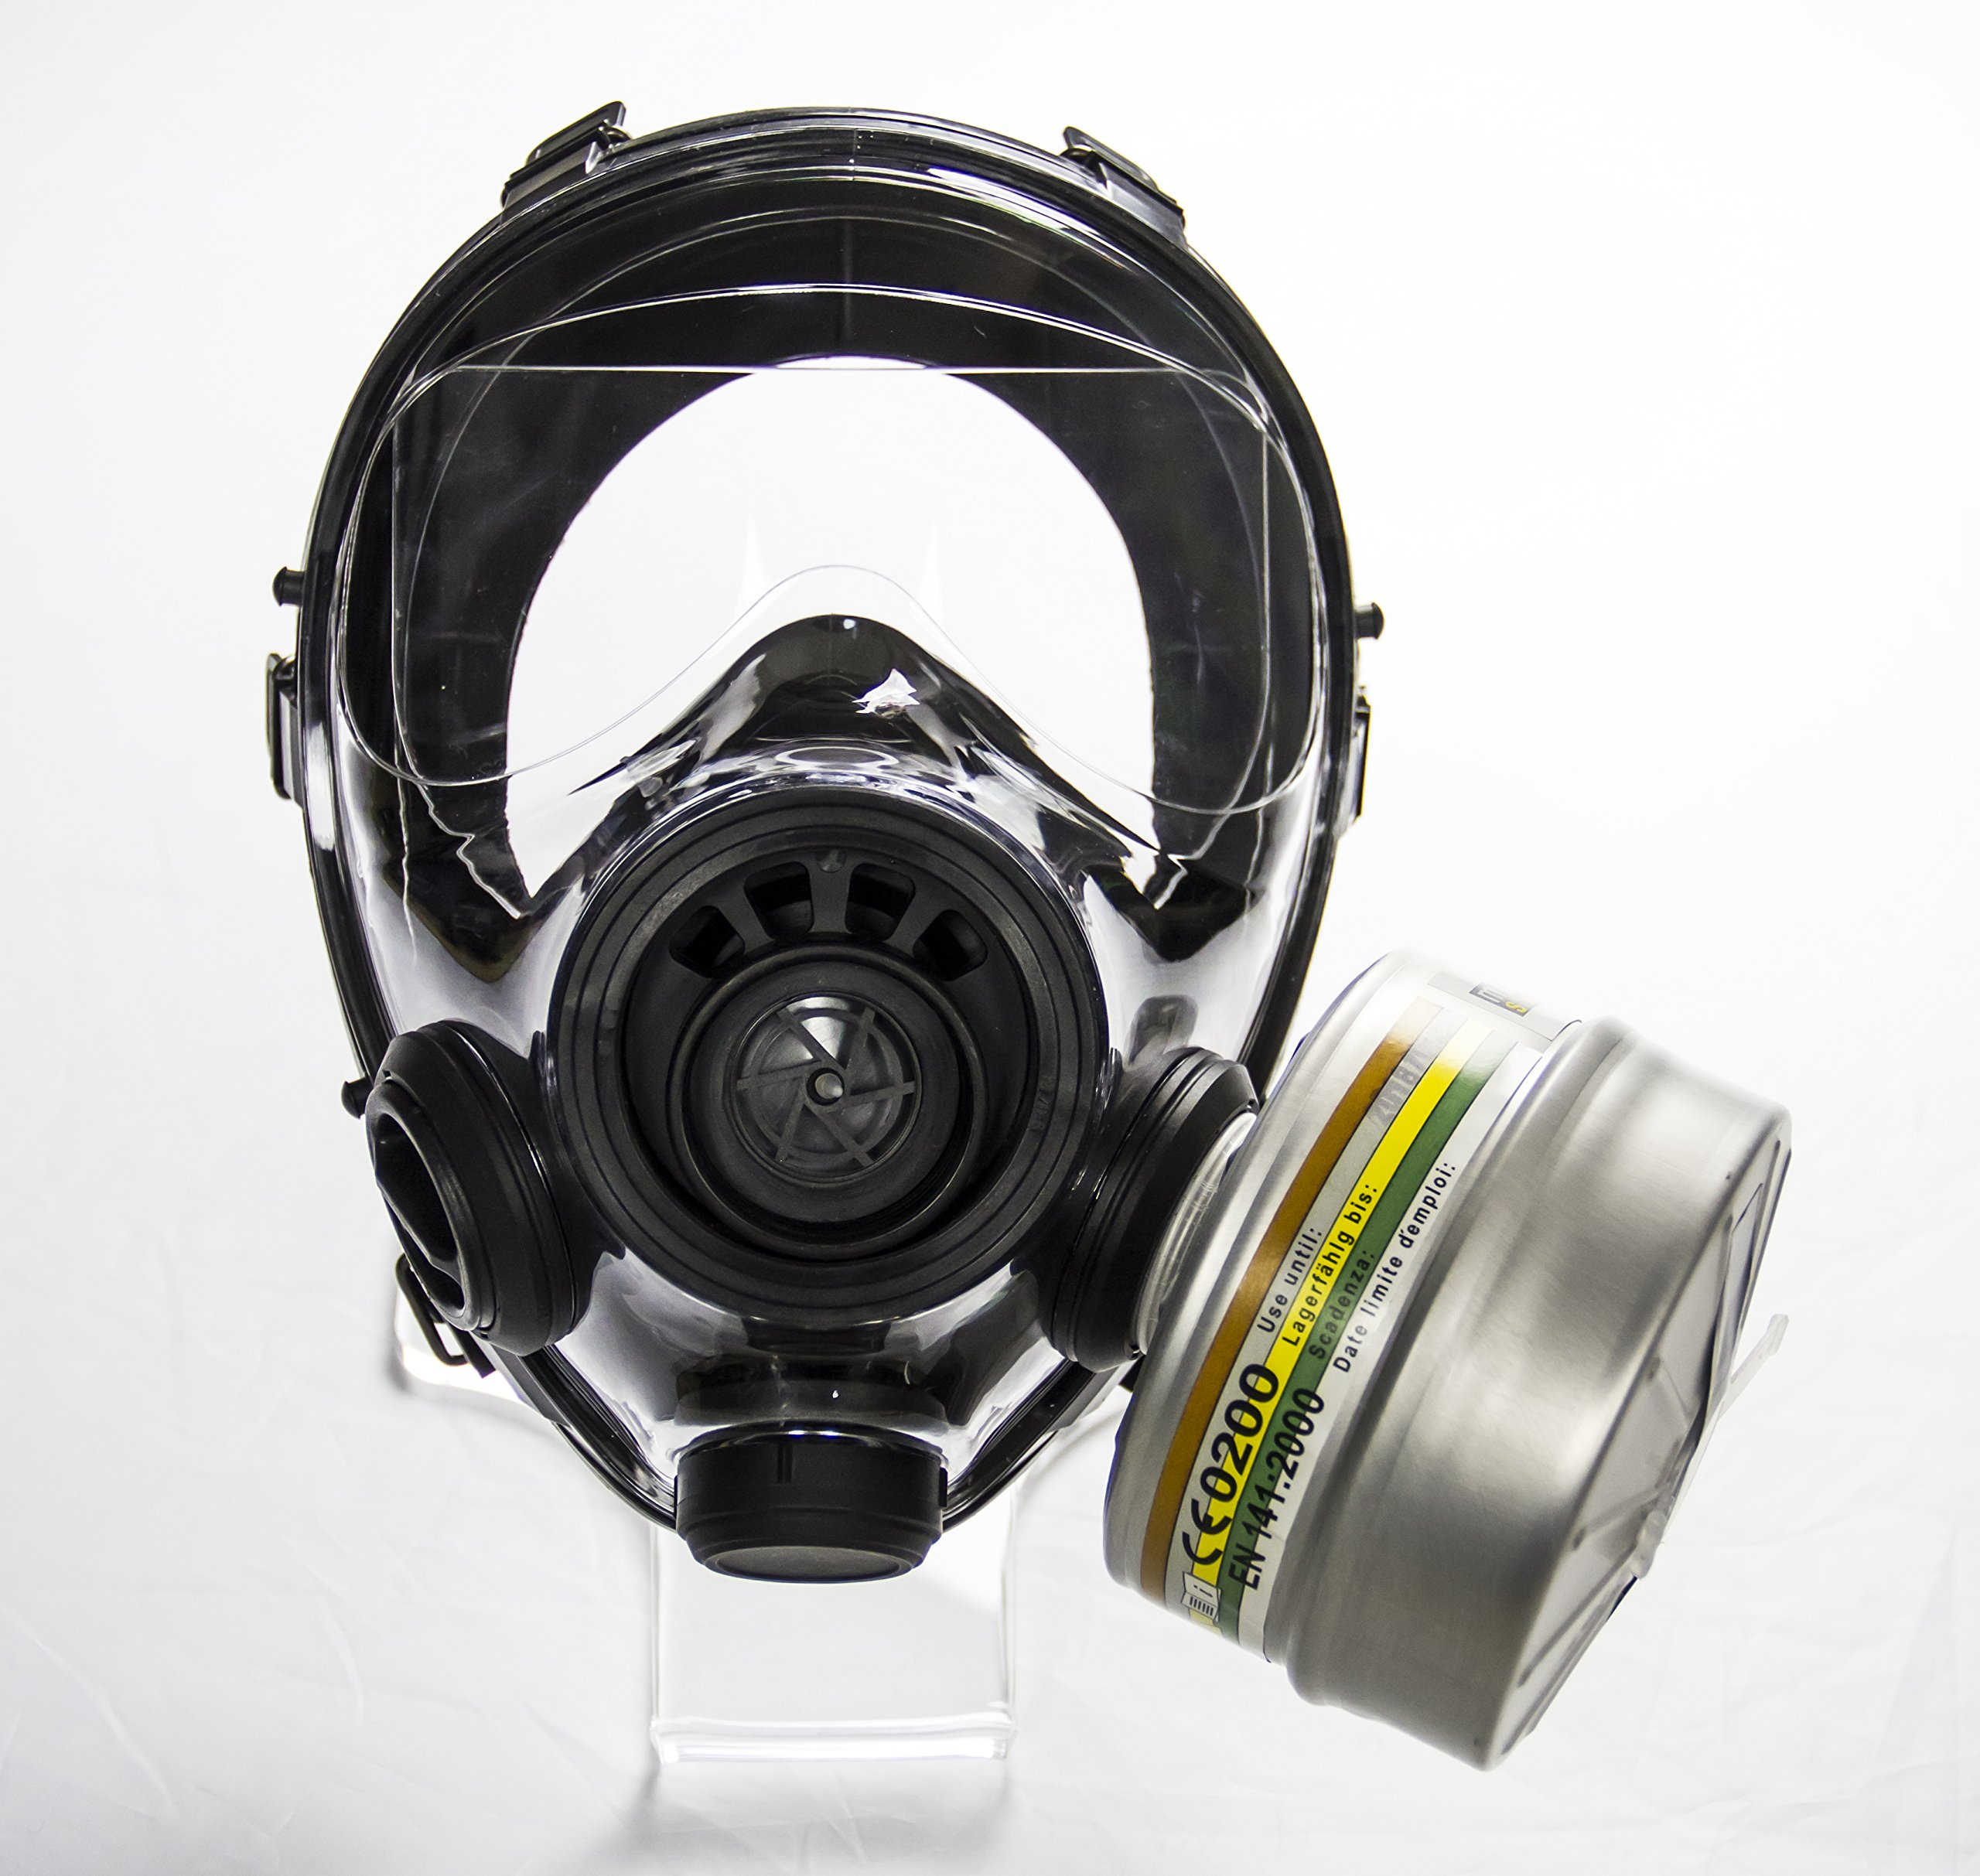 Mestel Safety - Full-face Gas Mask, Anti-Gas Respirator Mask - Resistant to Chemical Agents and Aggressive Toxic Substances - Suitable for Pesticide and Chemical Protection - SGE 400/3 BB S/M by Mestel Safety (Image #5)